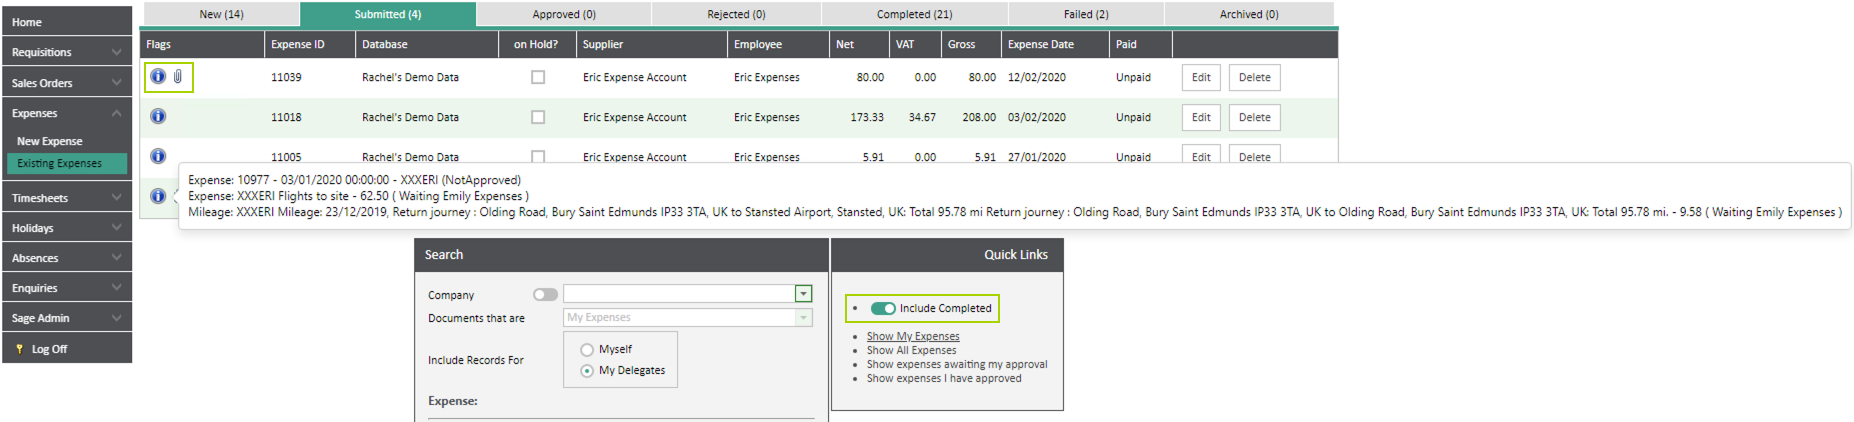 Sicon WAP Expenses Help and User Guide - Expenses HUG Section 6.5 Image 1